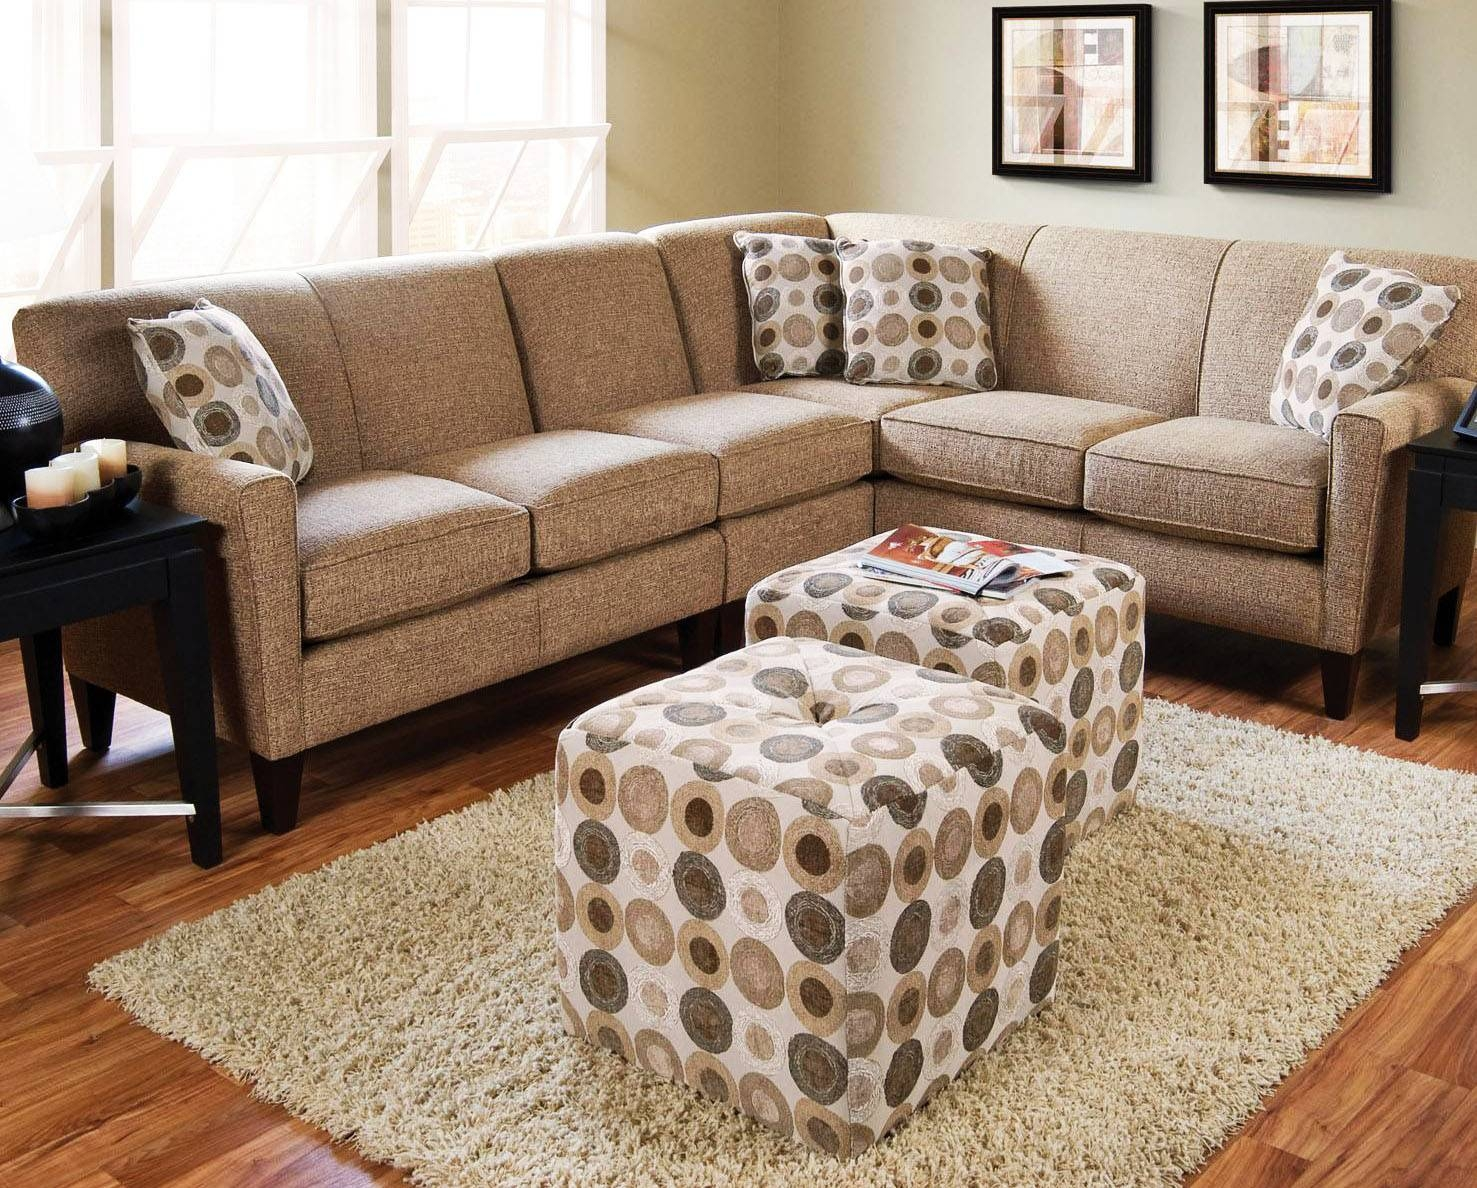 How To Choose Sectional Sofas For Small Spaces | Homefurniture within Sectional Sofas In Small Spaces (Image 10 of 25)